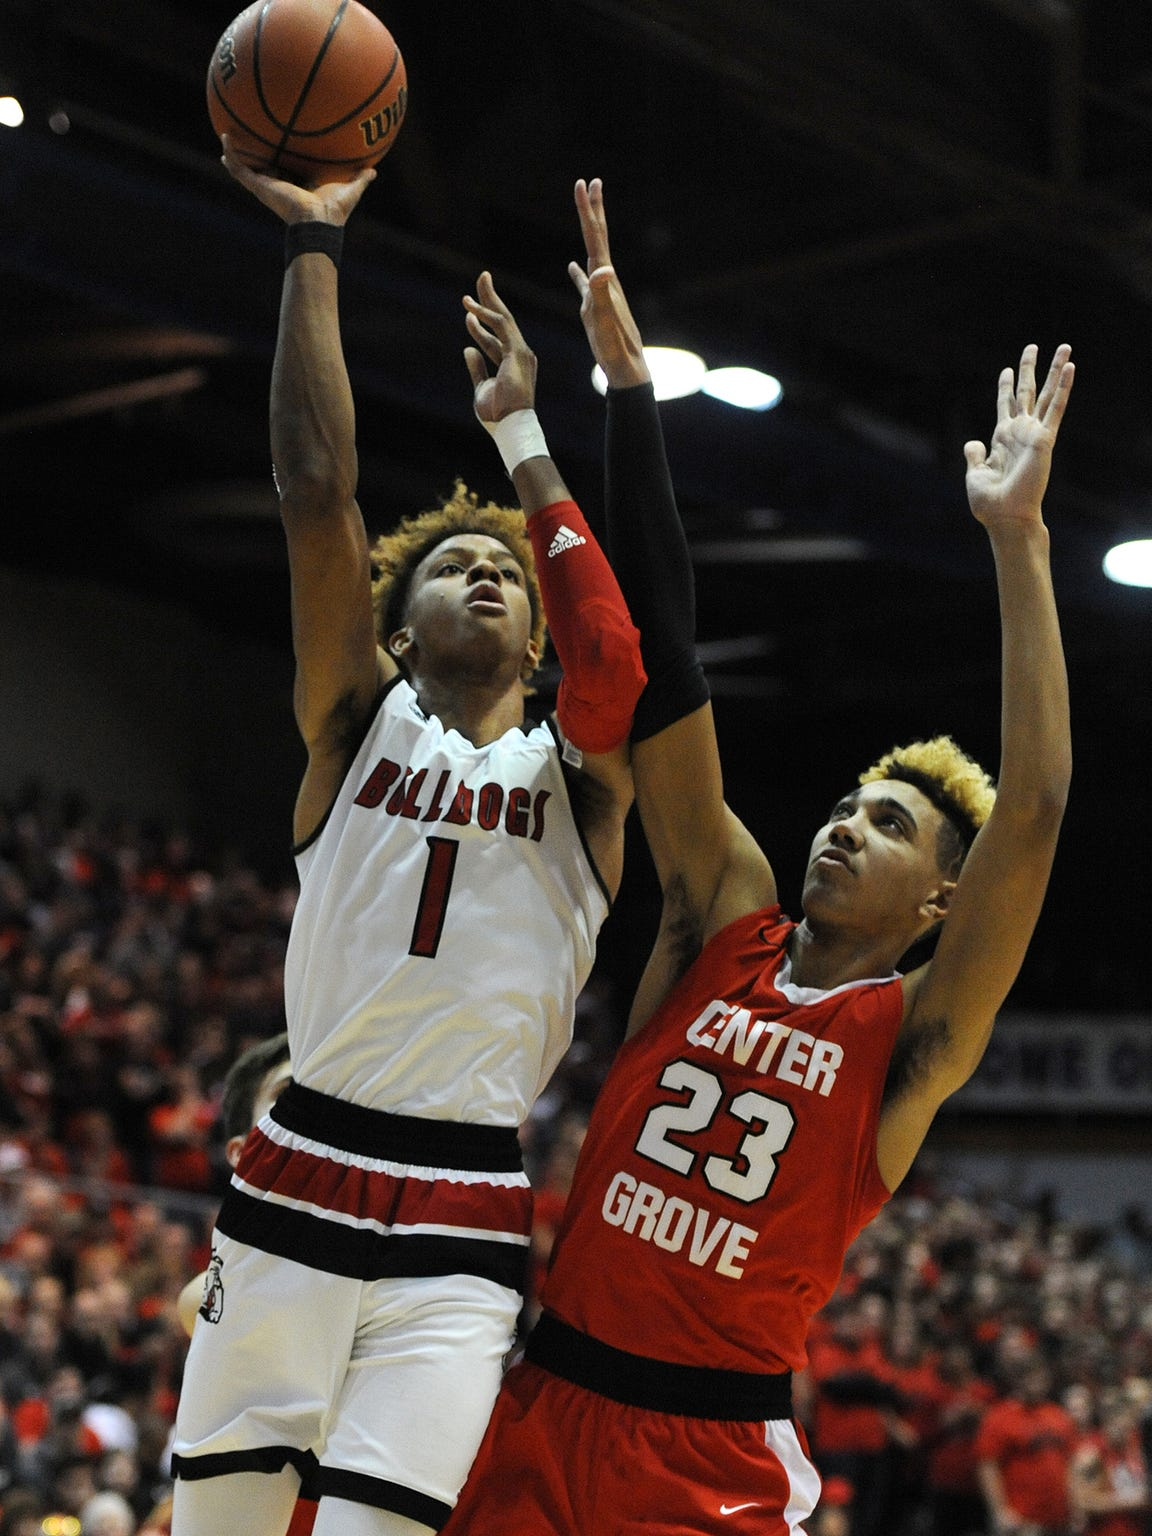 New Albany's Romeo Langford (left) shoots against Center Grove's Trayce Jackson-Davis (right) on Saturday during the Regional Final at Seymour High School. March 10, 2018.